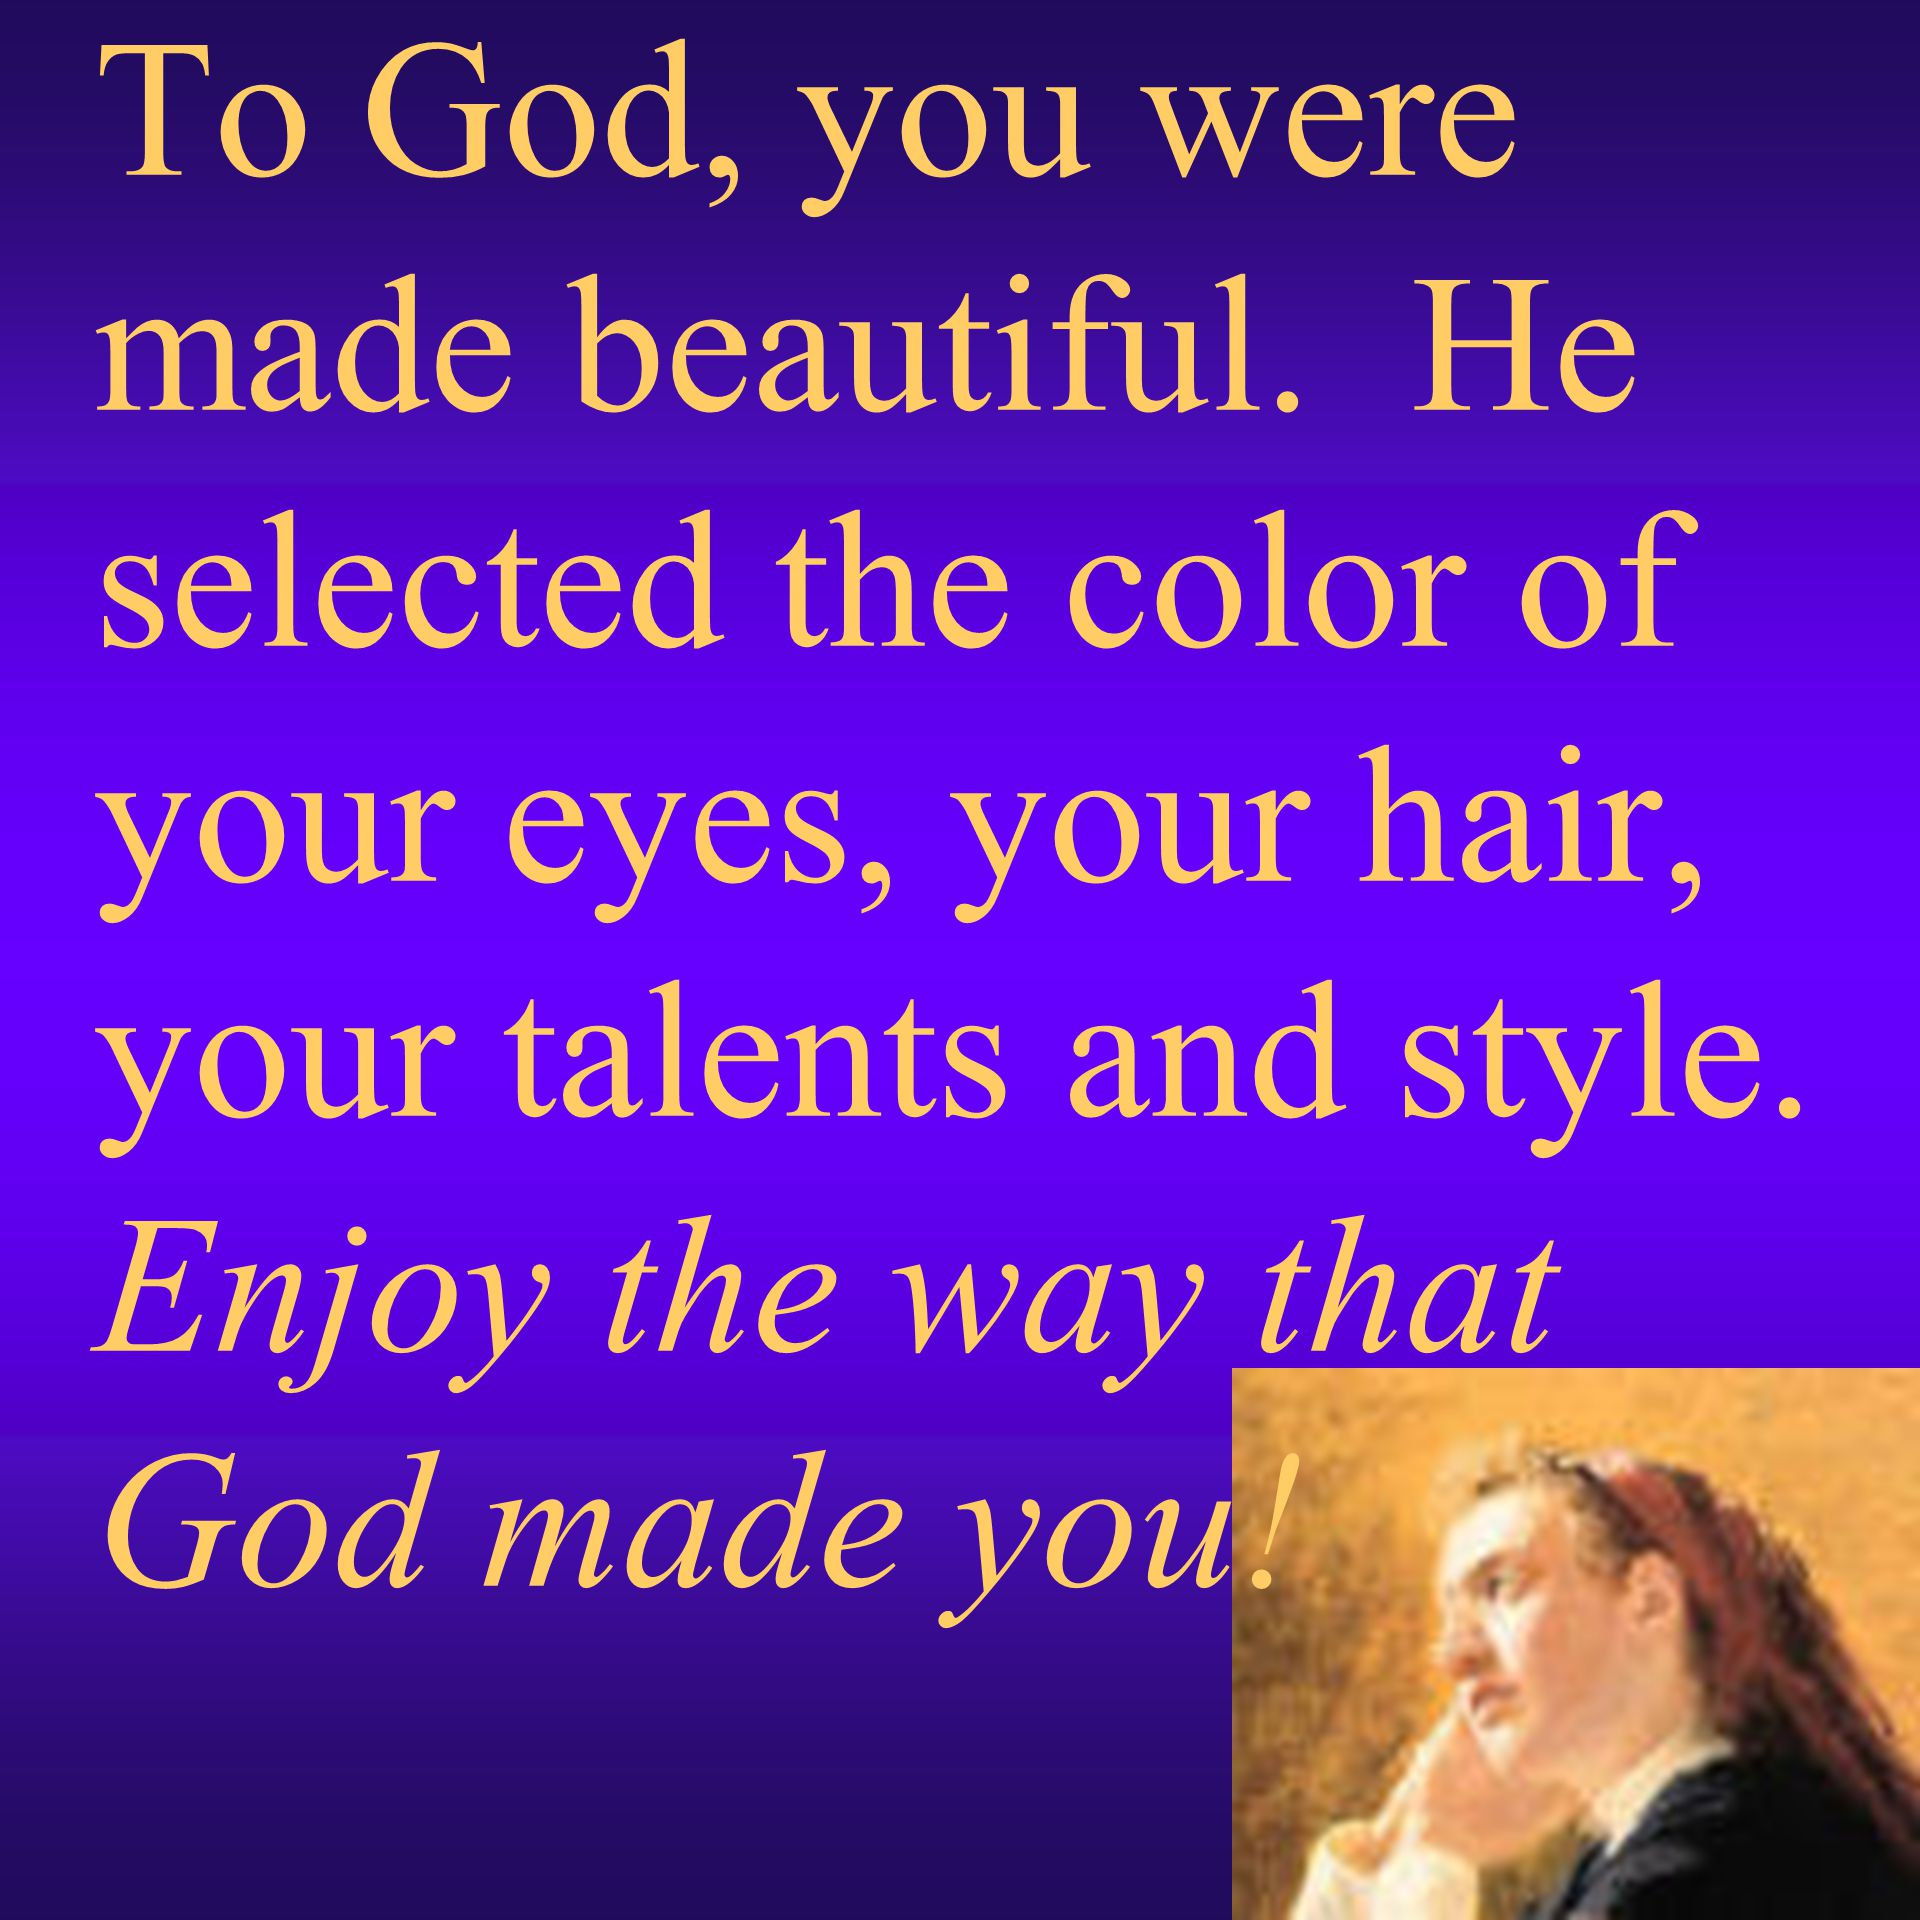 To God, you were made beautiful